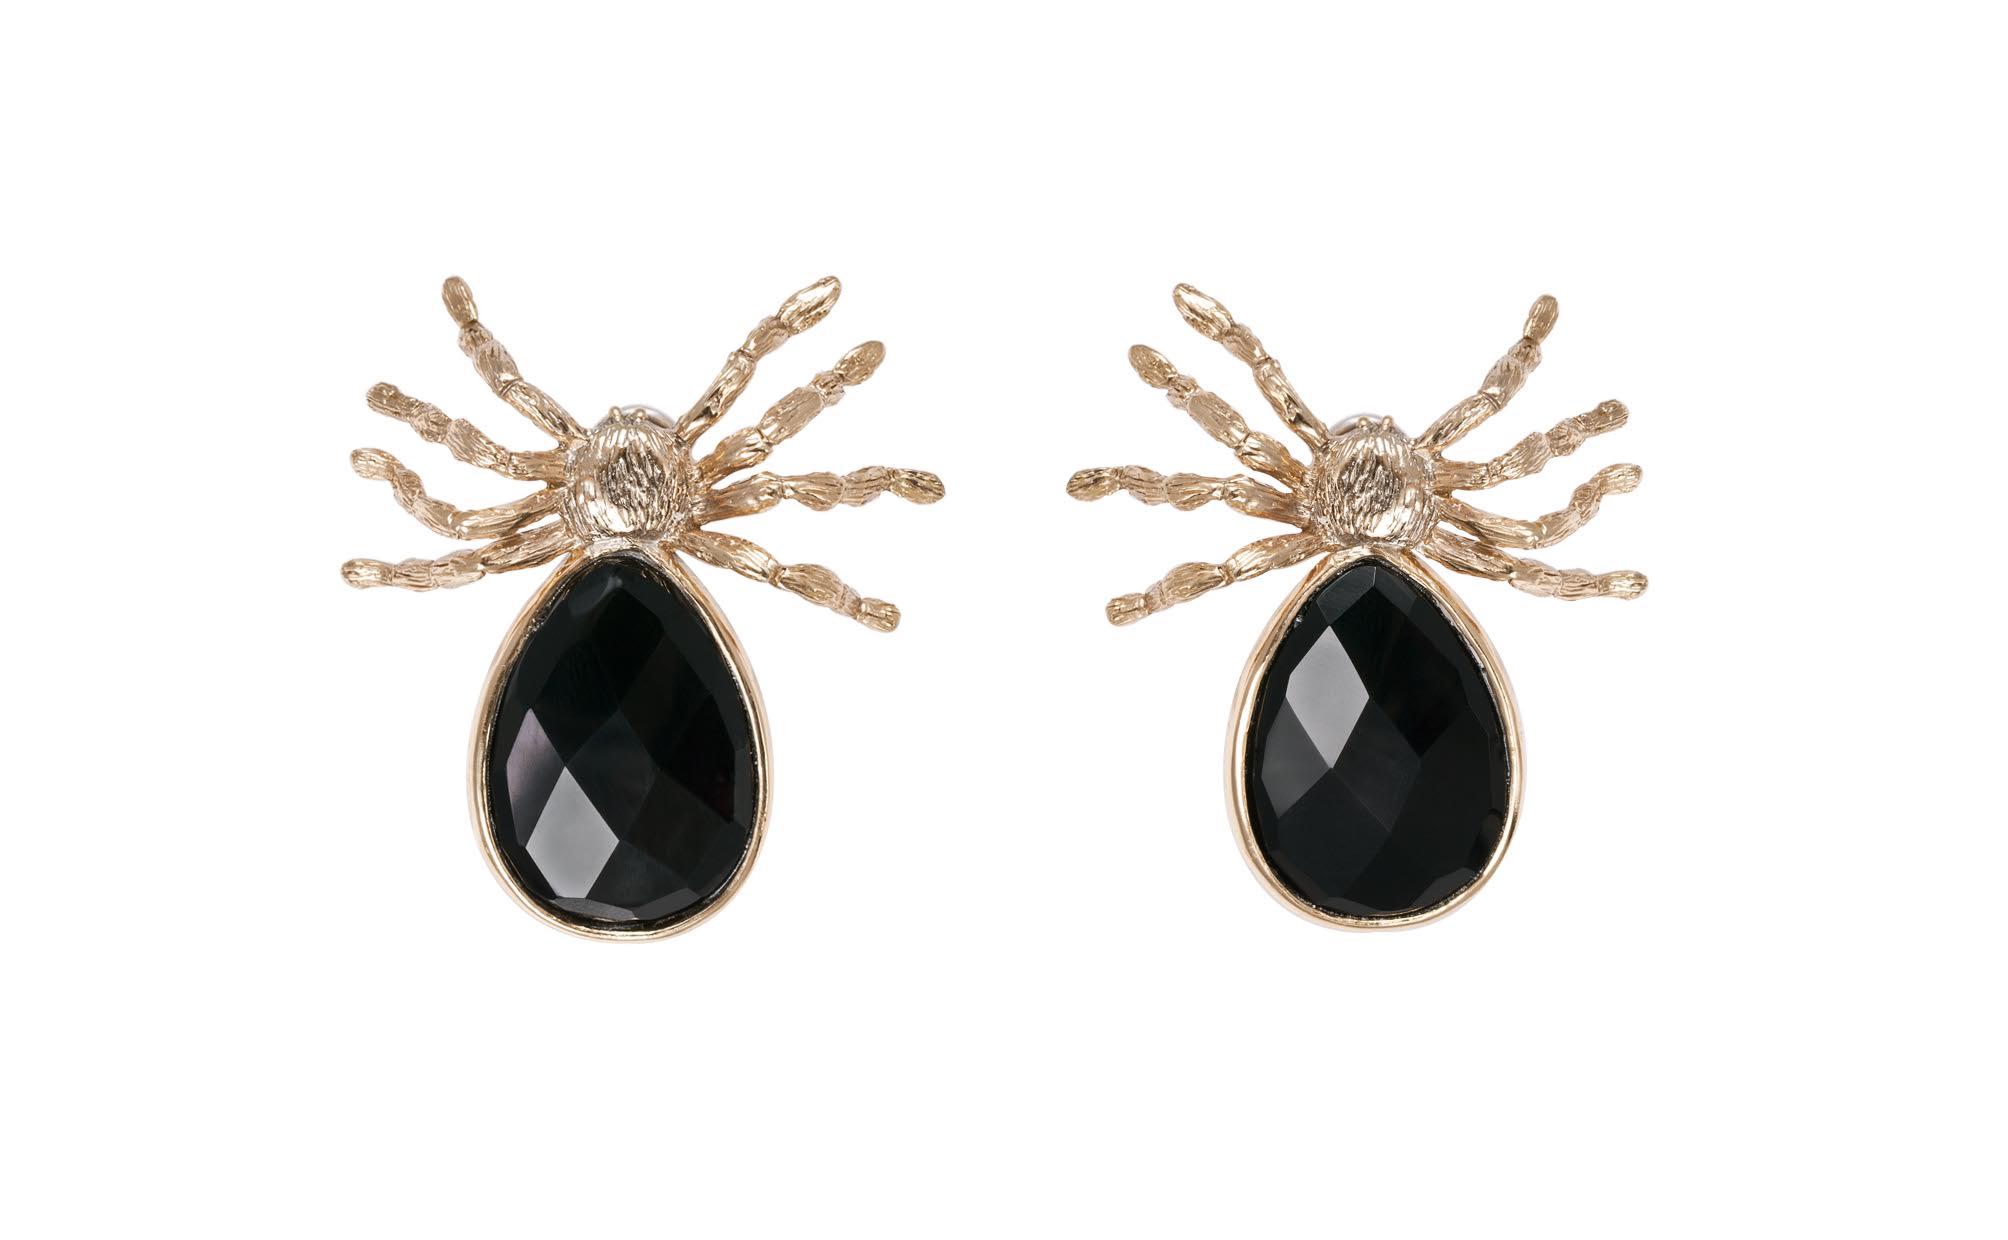 Giant spider earrrings with onyx